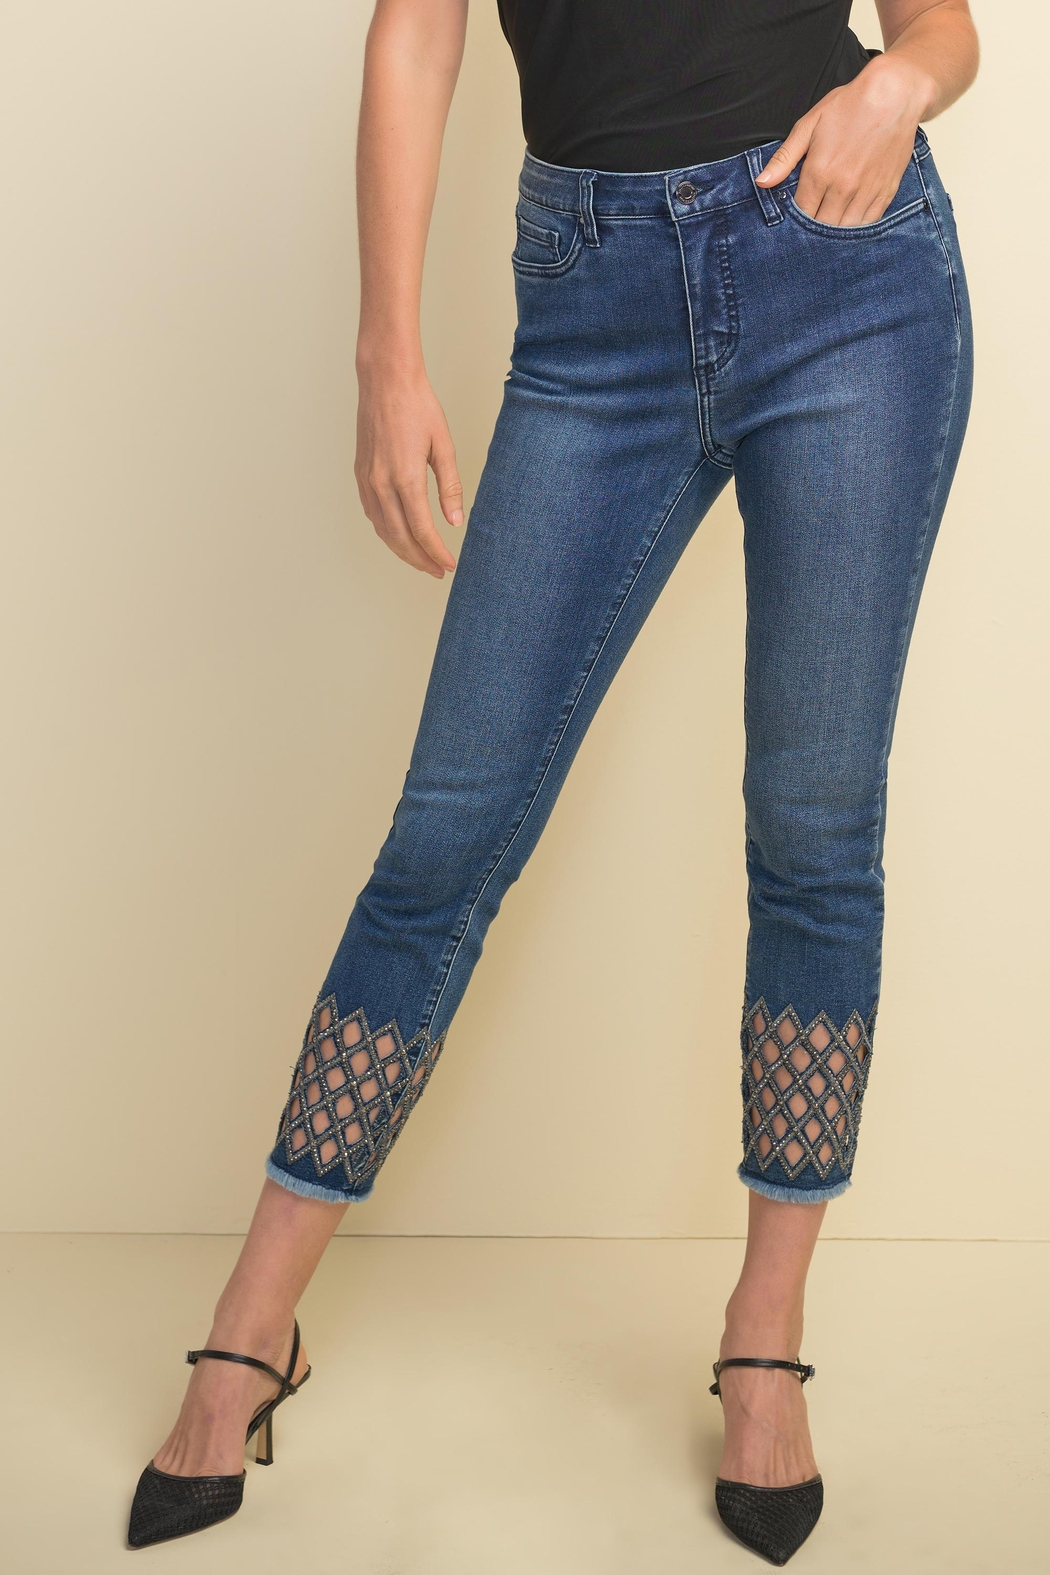 Joseph Ribkoff Diamond-Cut Detail Denim Pant - Main Image